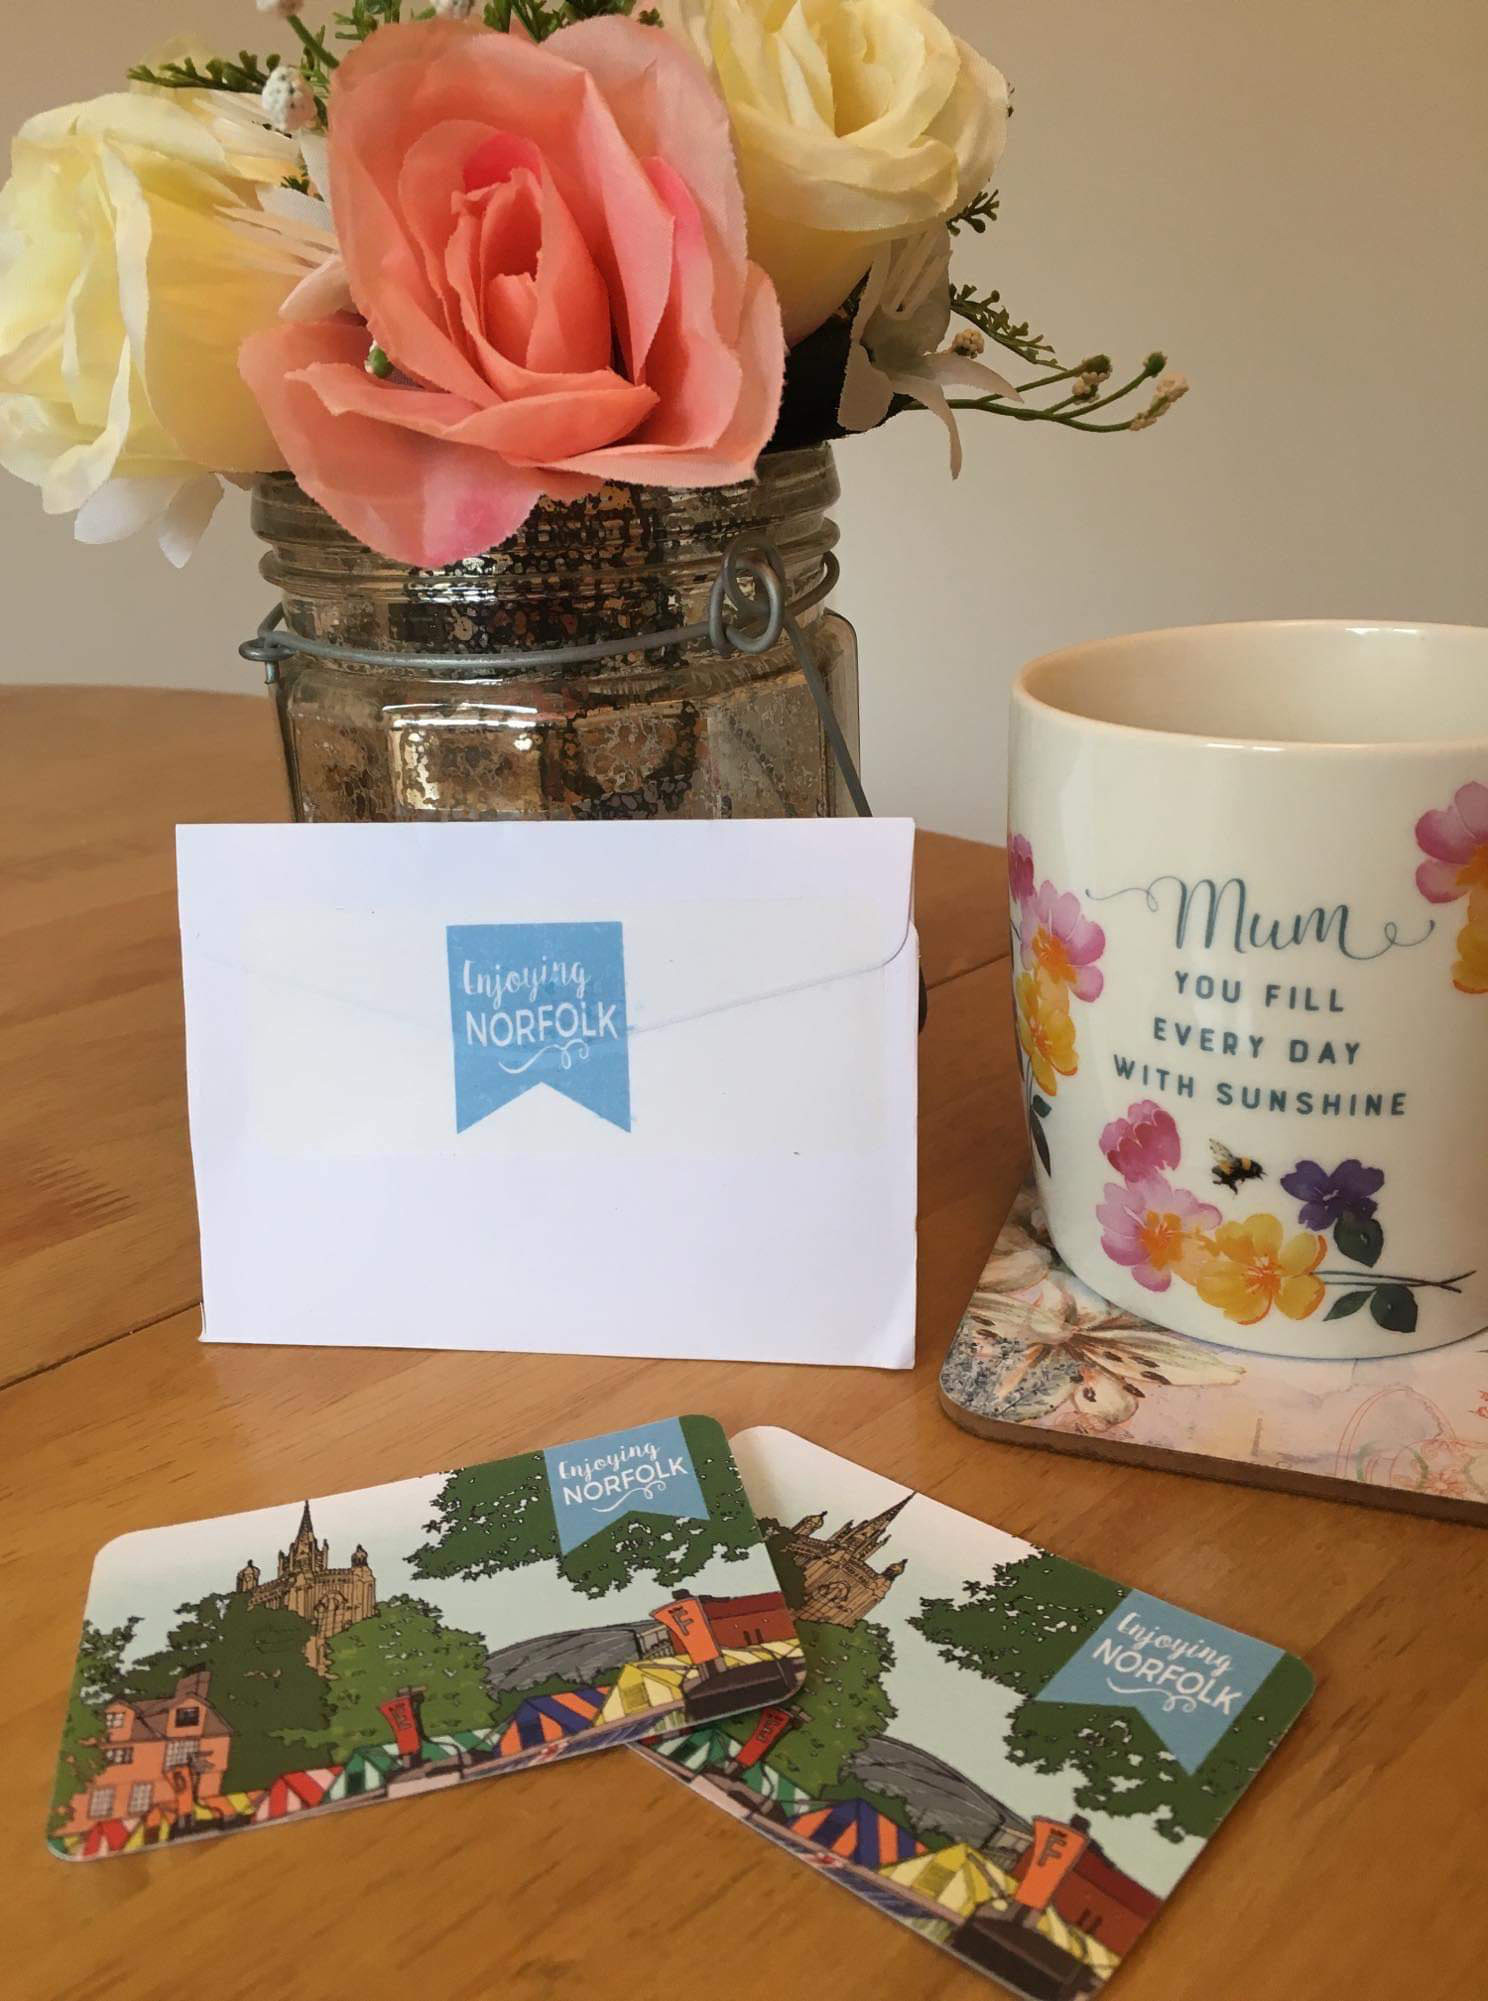 Teepees Tents & Treats receives her cards!